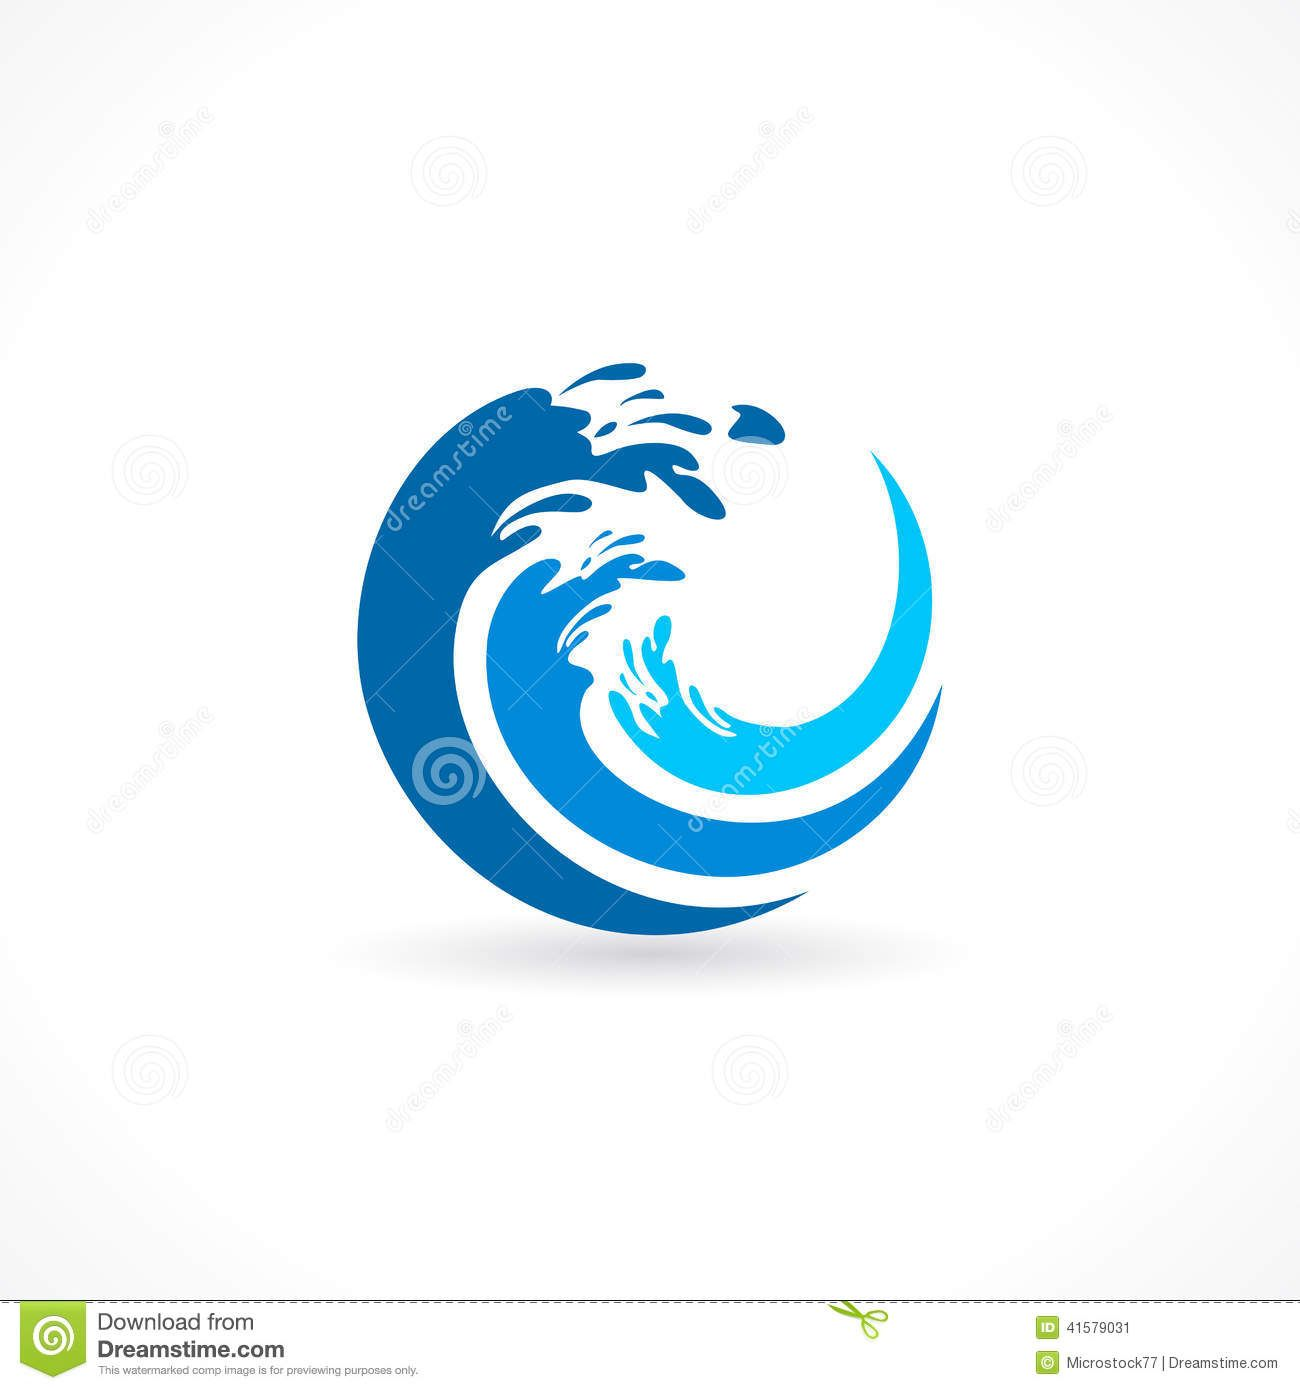 Water Wave Splash Icon - Download From Over 64 Million High Quality